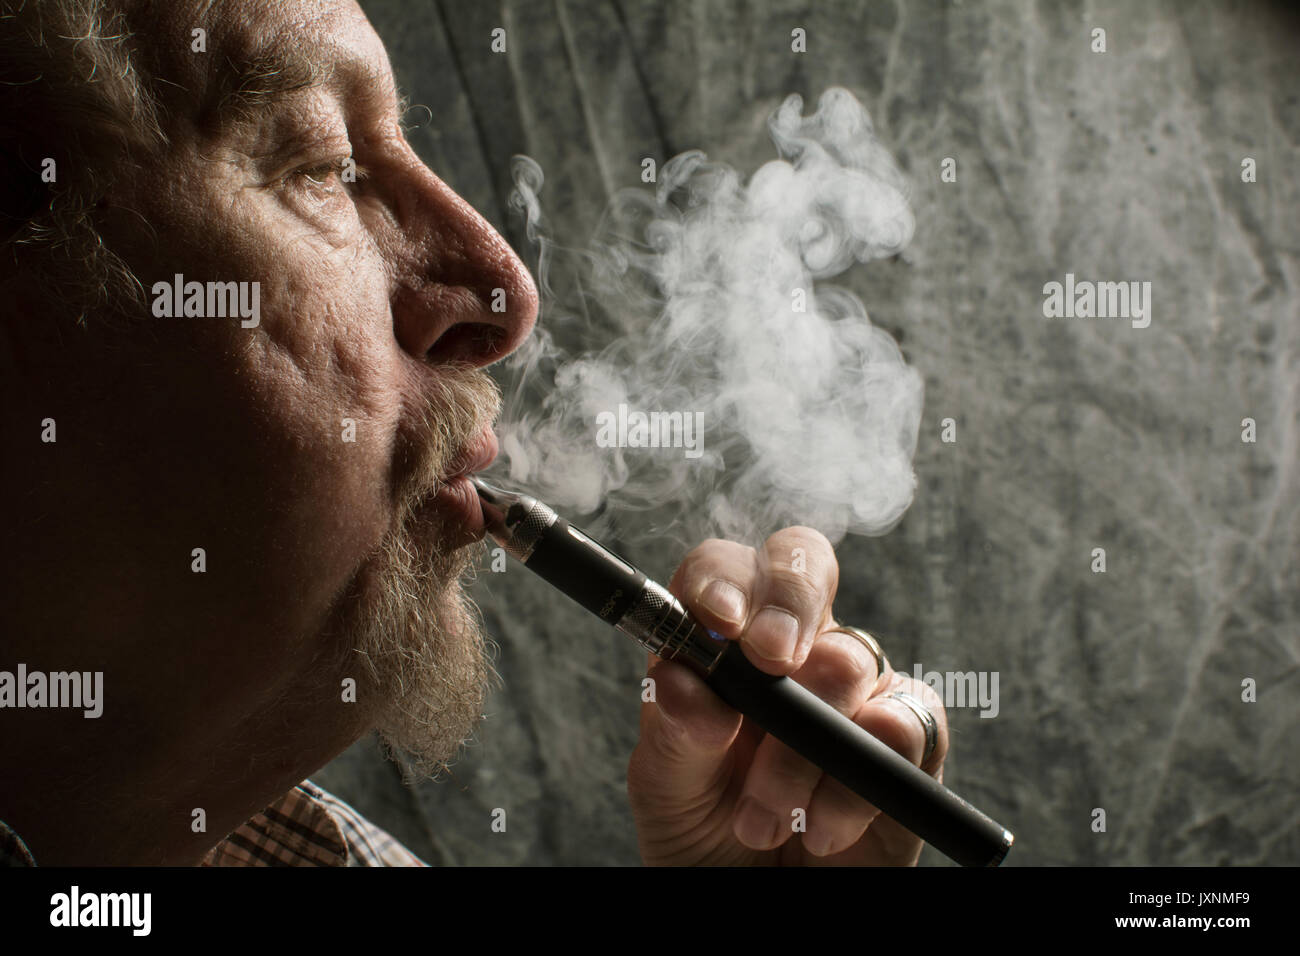 An older man with a beard smoking an electronic cigarette ( vaping an E-cigarette), a healthier option than tobacco cigarettes. - Stock Image